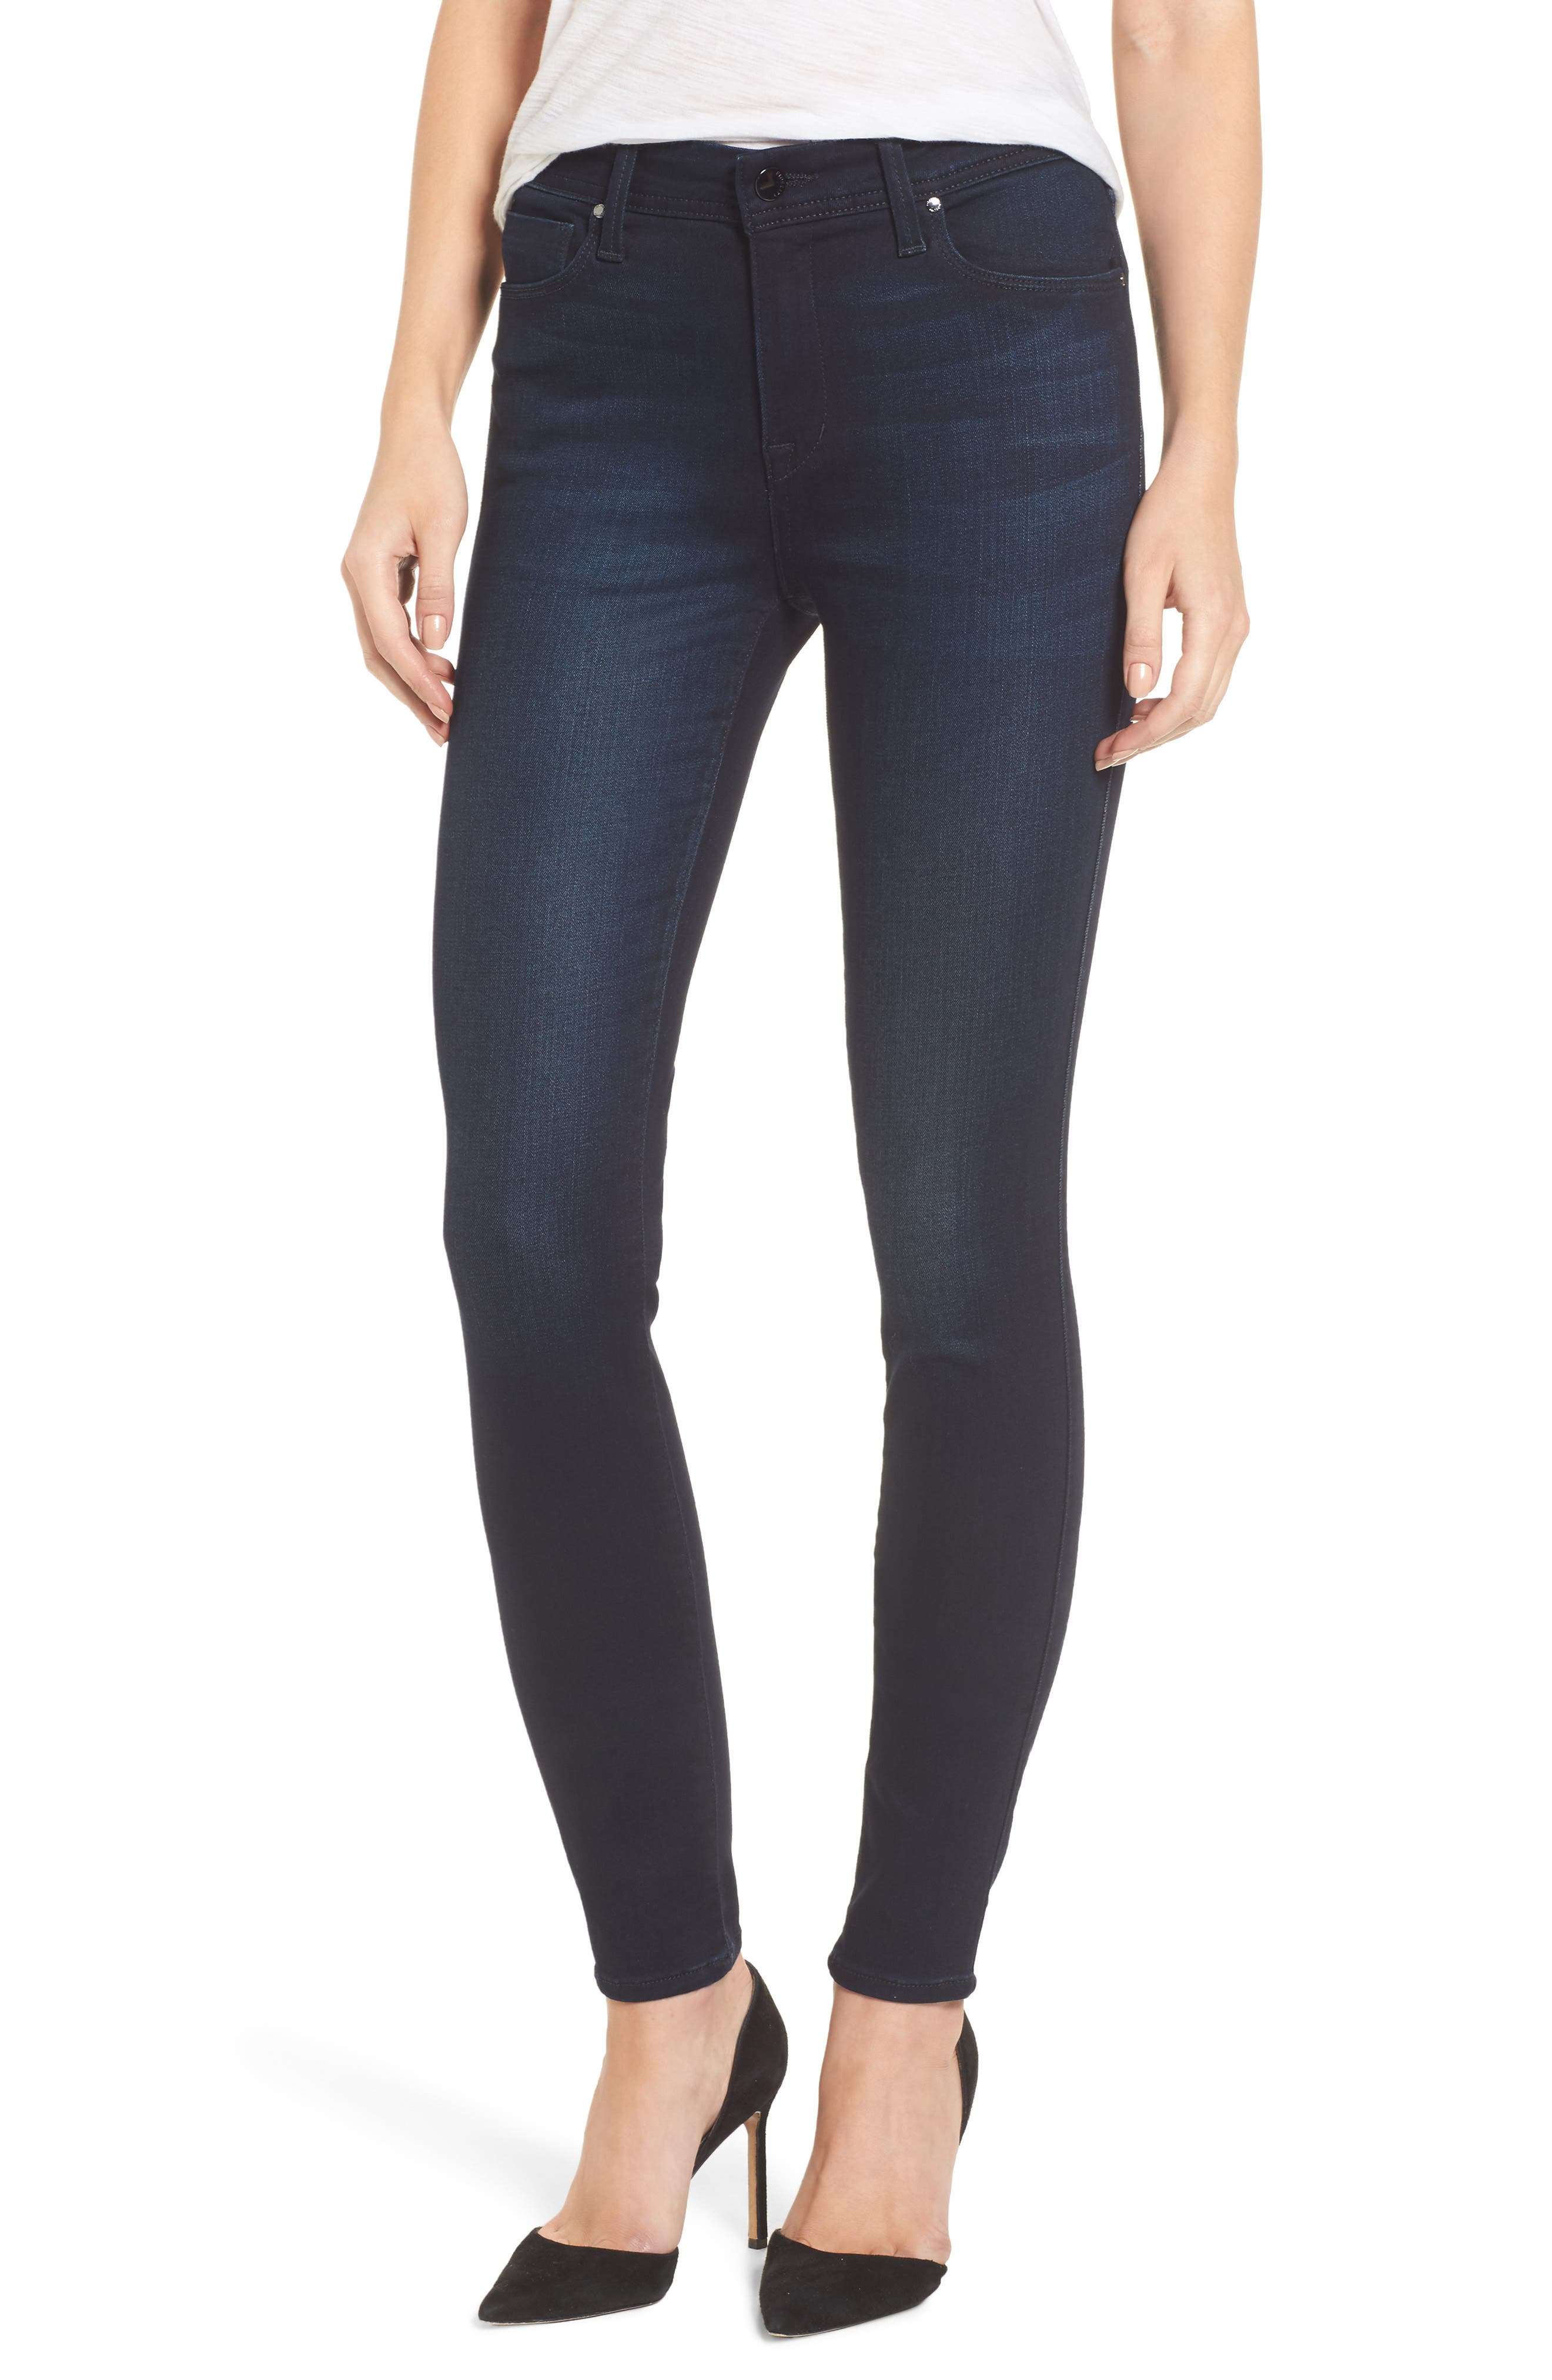 Fidelity Jeans Belvedere Skinny Jeans,                         Main,                         color, Sapphire